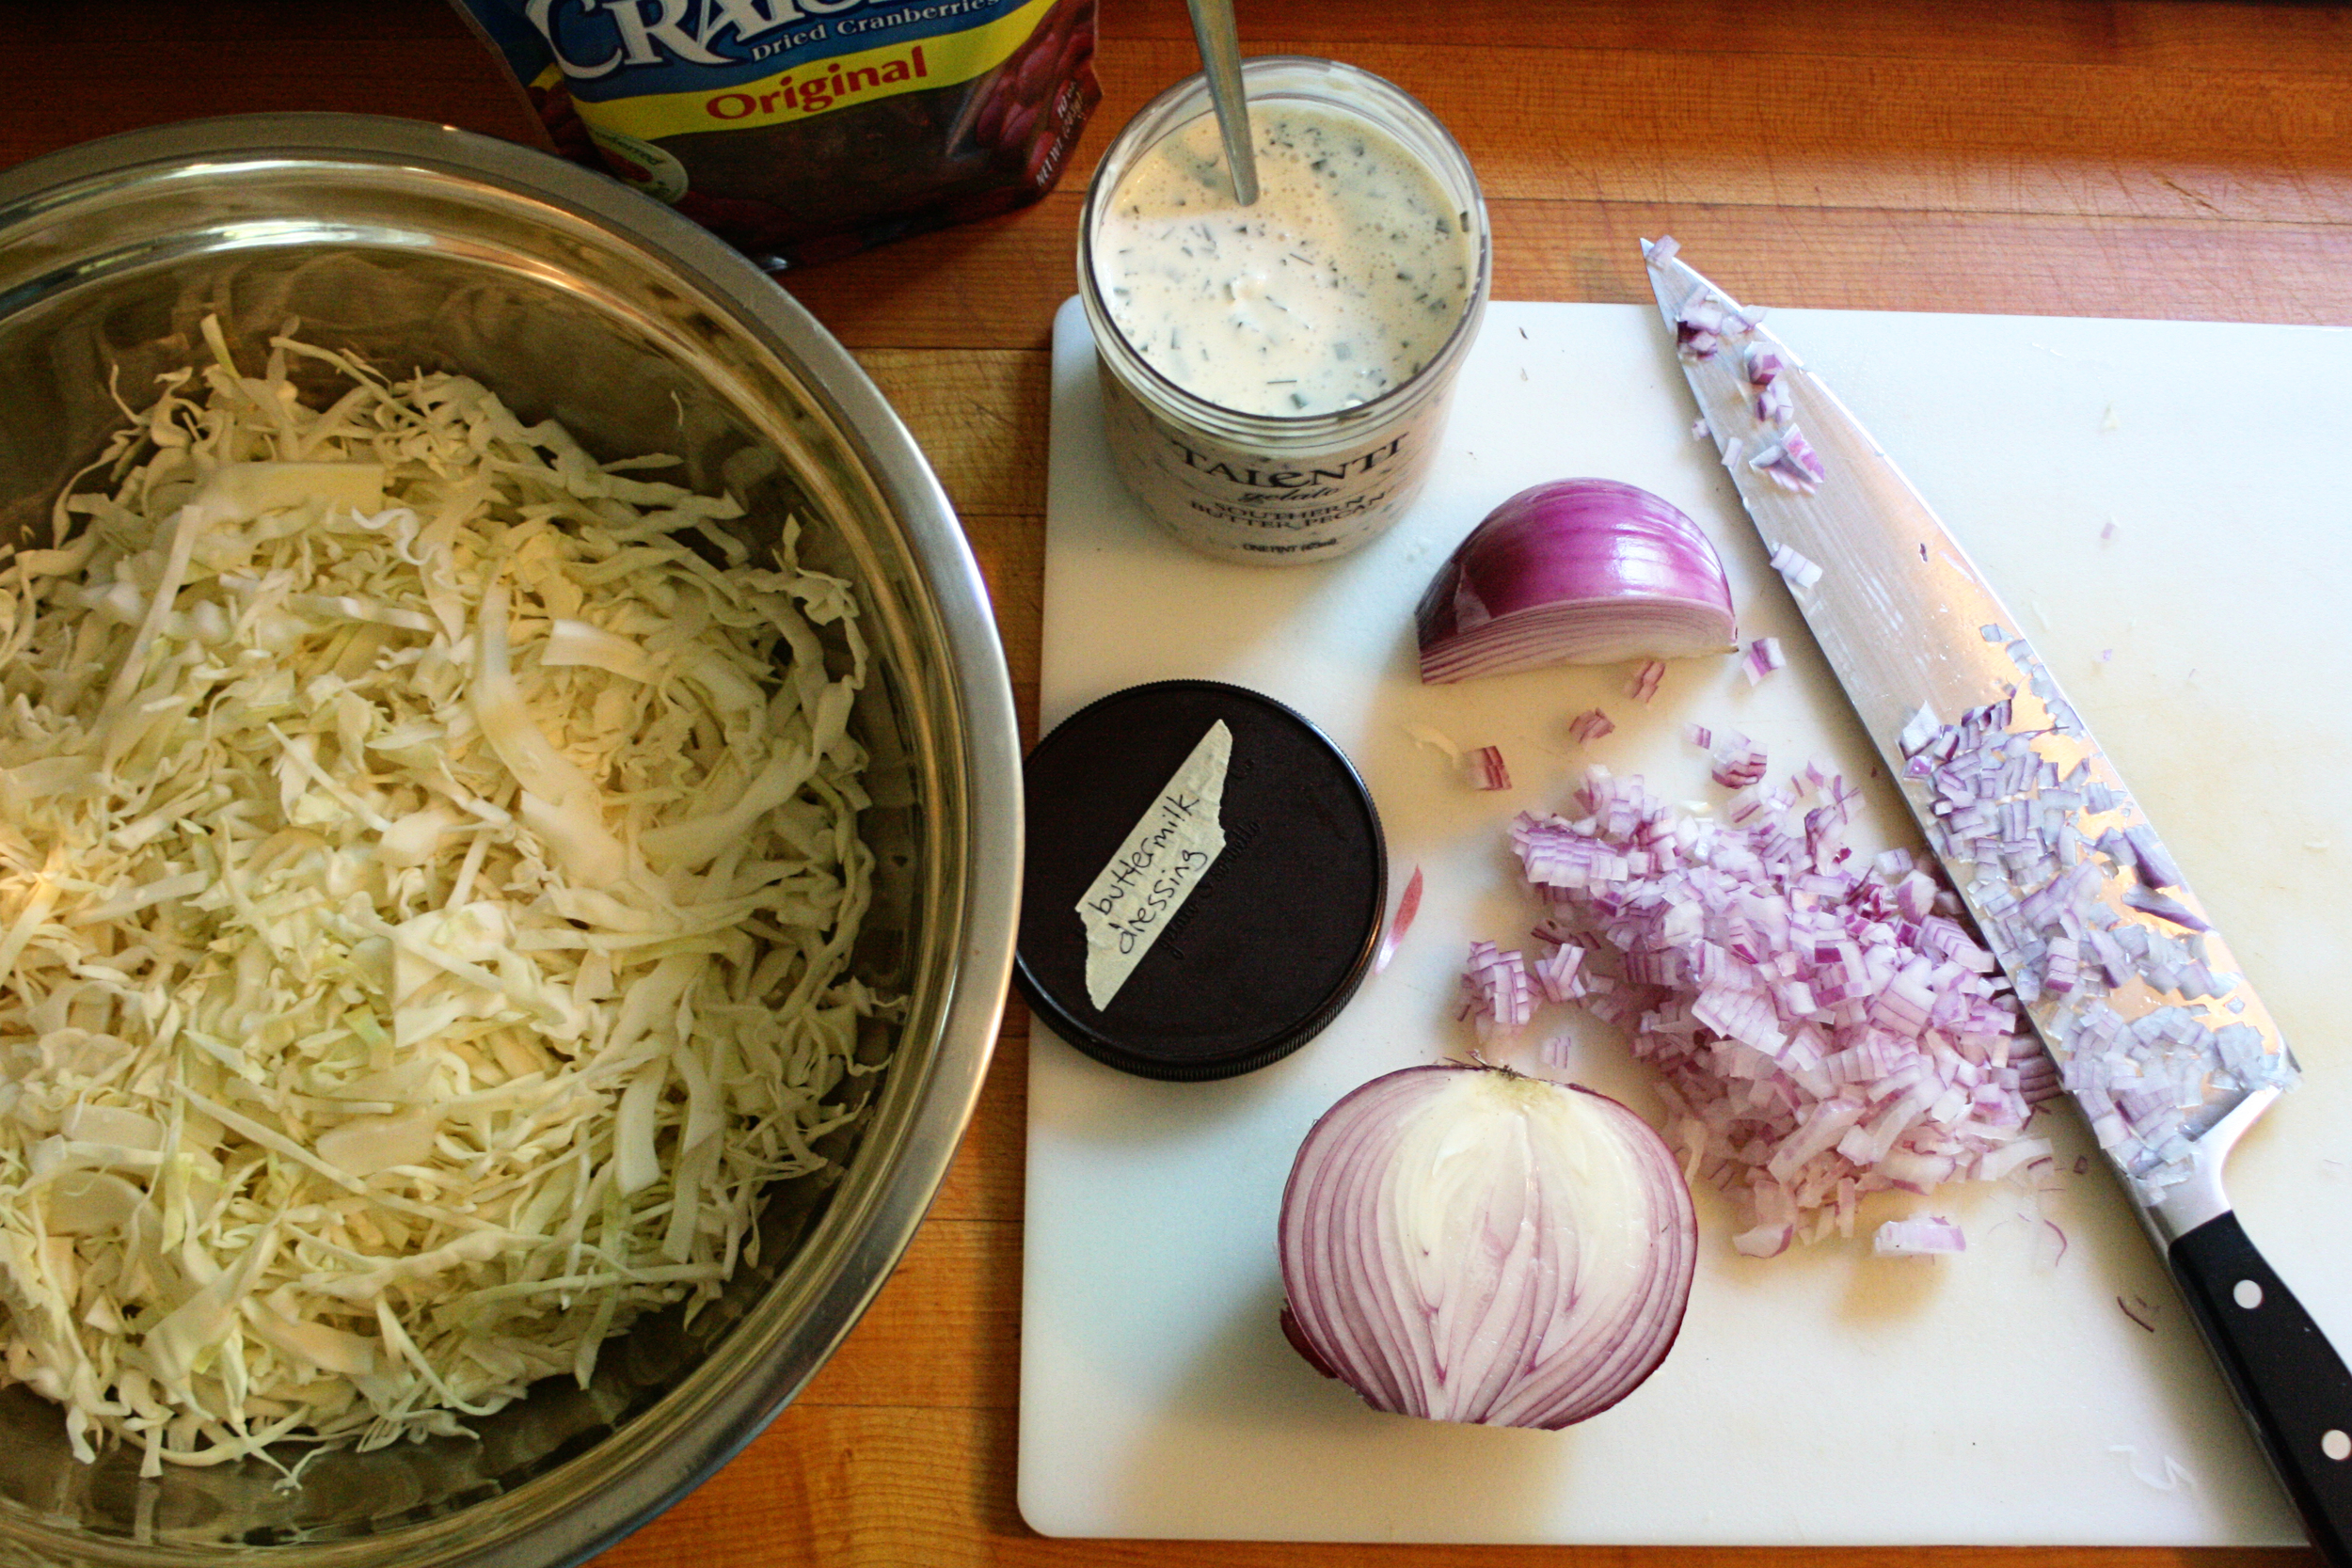 I thinly slice one small or half a large head of cabbage, chop a half of a red onion (somewhat finely), and toss in about a cup of dried cranberries.